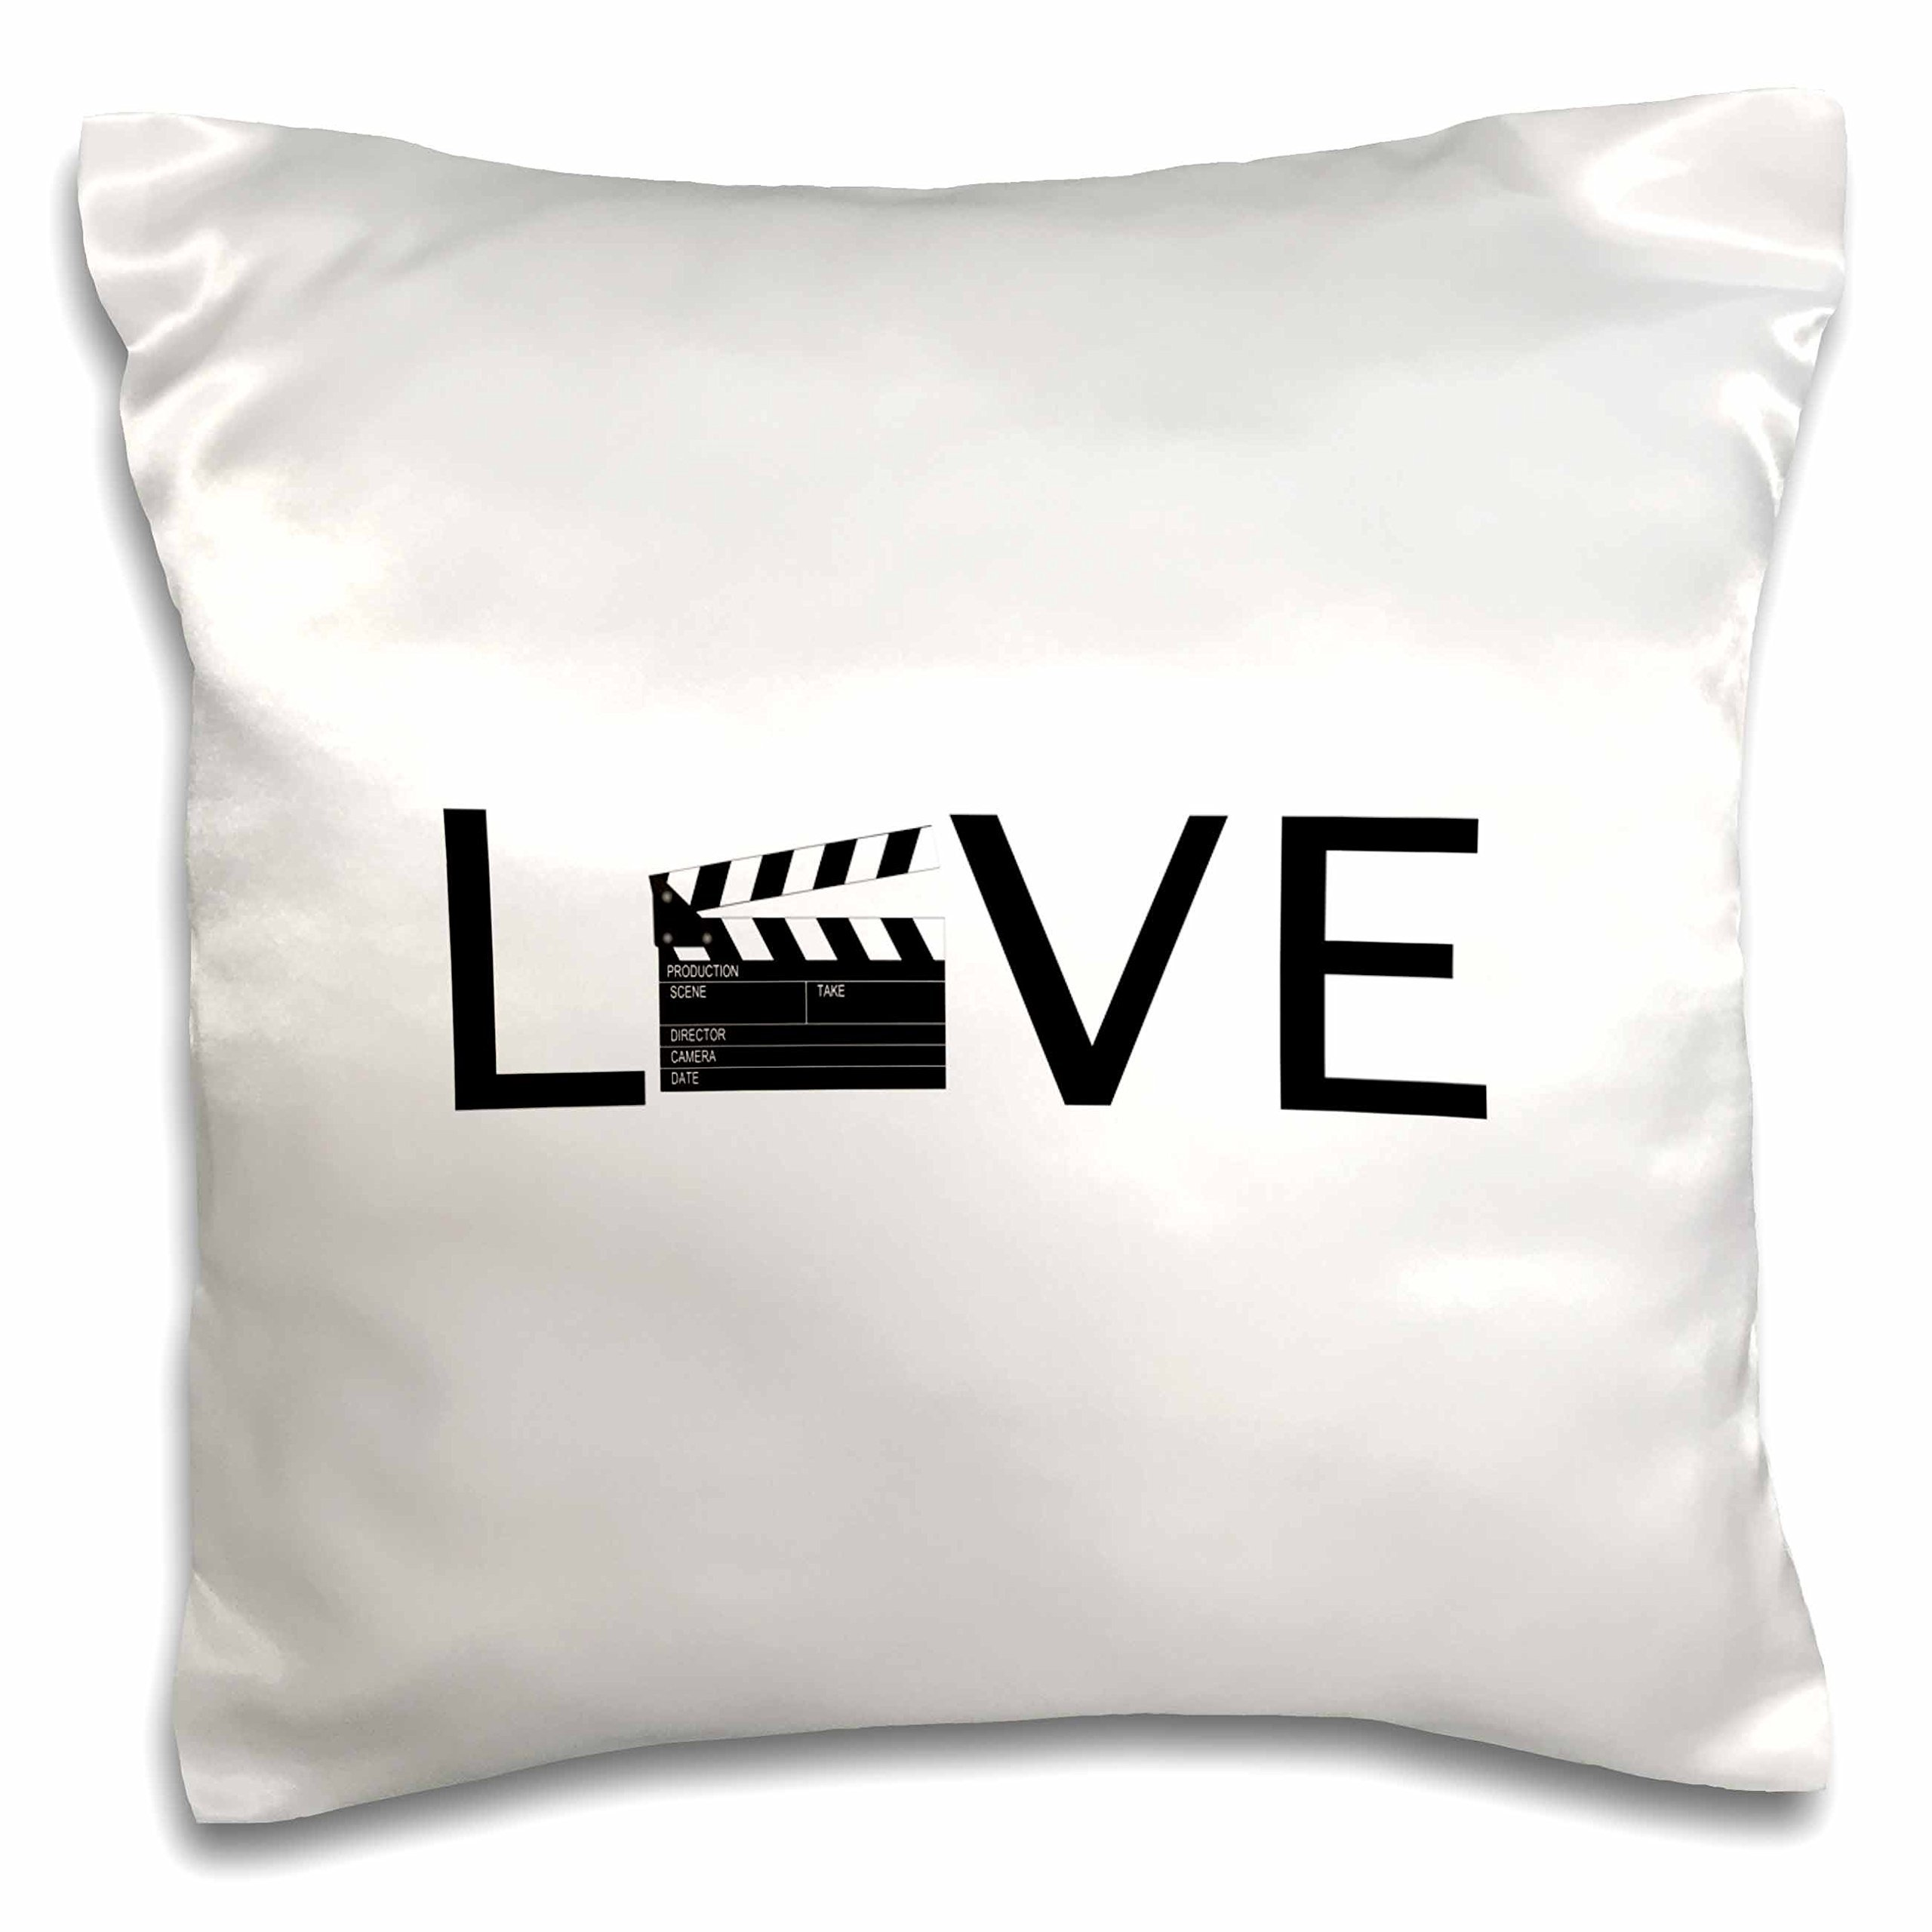 3D Rose Love with Movie Clapper for O Buff Film Making Text Pillow Case, 16'' x 16'', Black